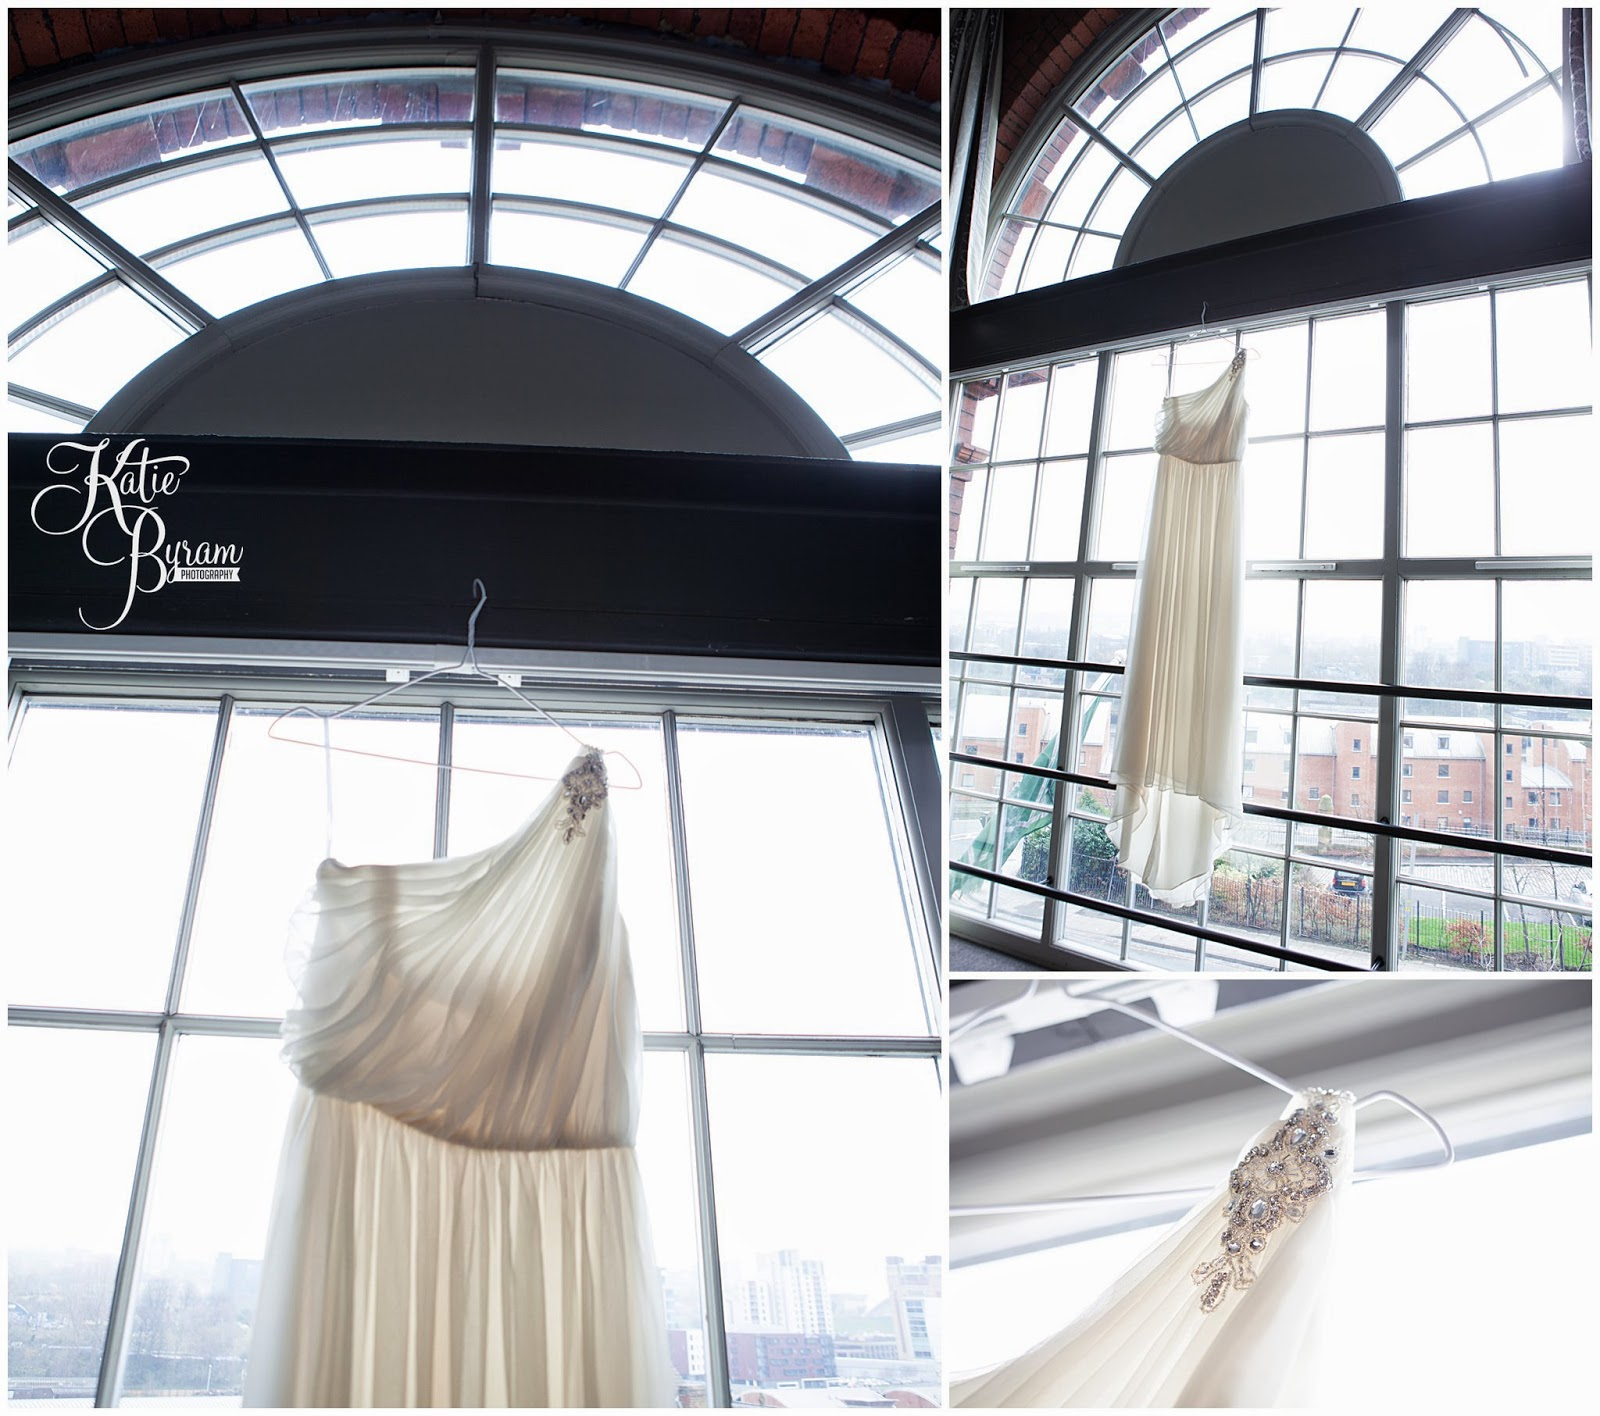 floaty wedding dress, hotel du vin newcastle, hotel du vin wedding, hotel du vin wedding photographs, hotel du vin newcastle wedding photographs, vintage wedding, small wedding, katie byram photography, newcastle wedding venue, city wedding venue